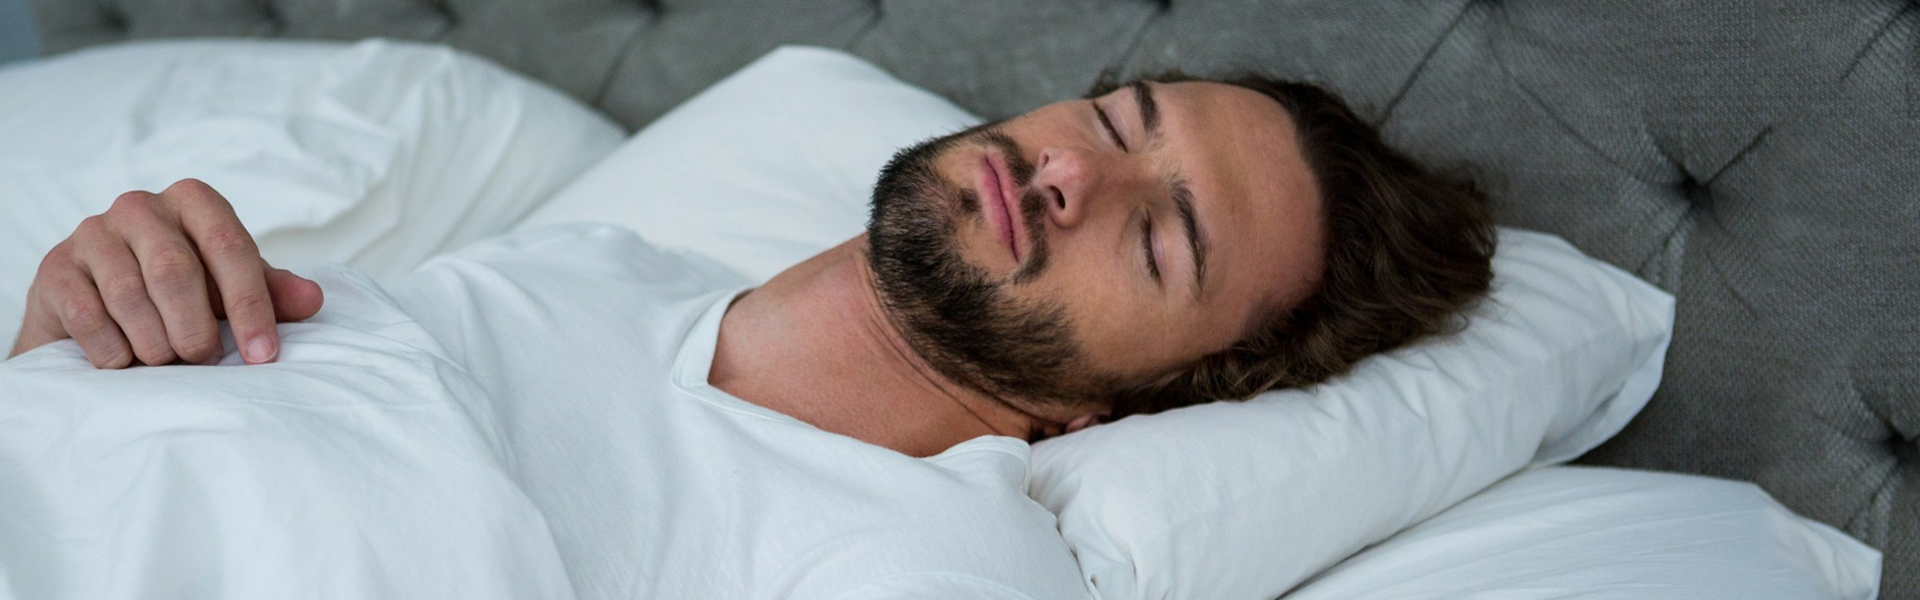 Is Nightlase Laser A Good Remedy For Snoring And Mild OSA Issues?